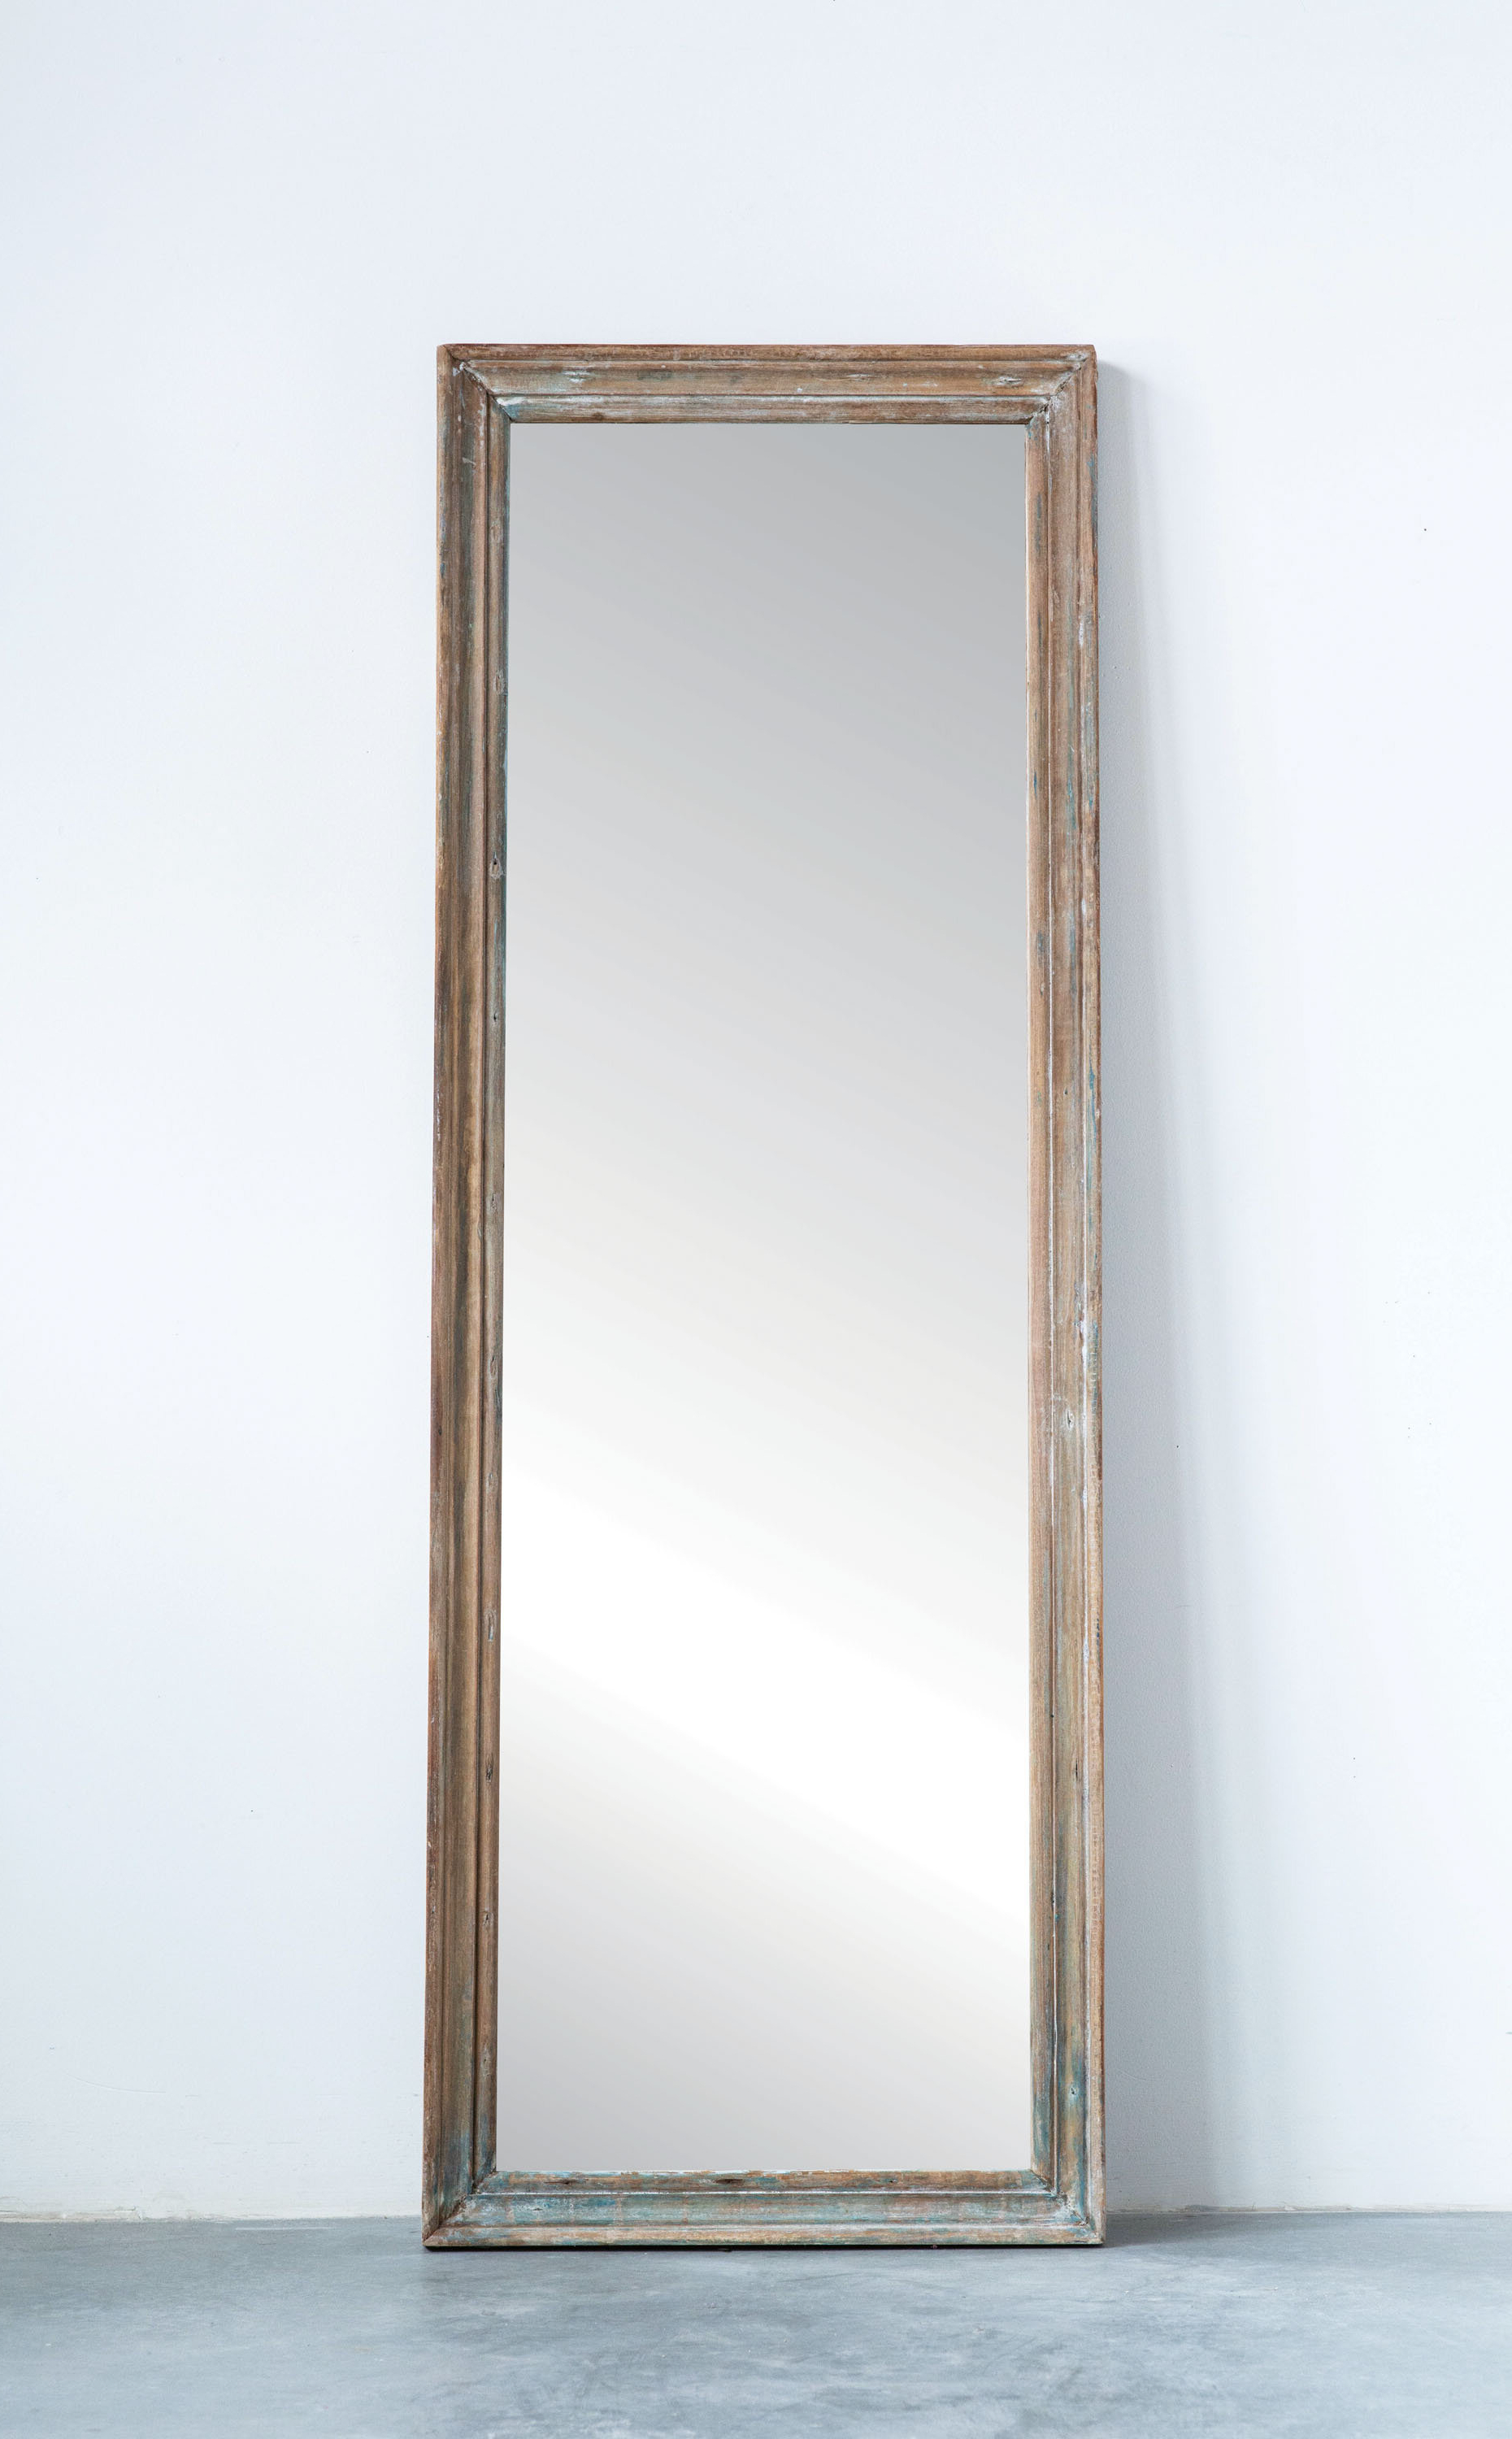 Ekaterina Arch/crowned Top Wall Mirrors With Regard To 2020 Jusino Rectangle Reclaimed Wood Traditional Full Length Mirror (Gallery 19 of 20)